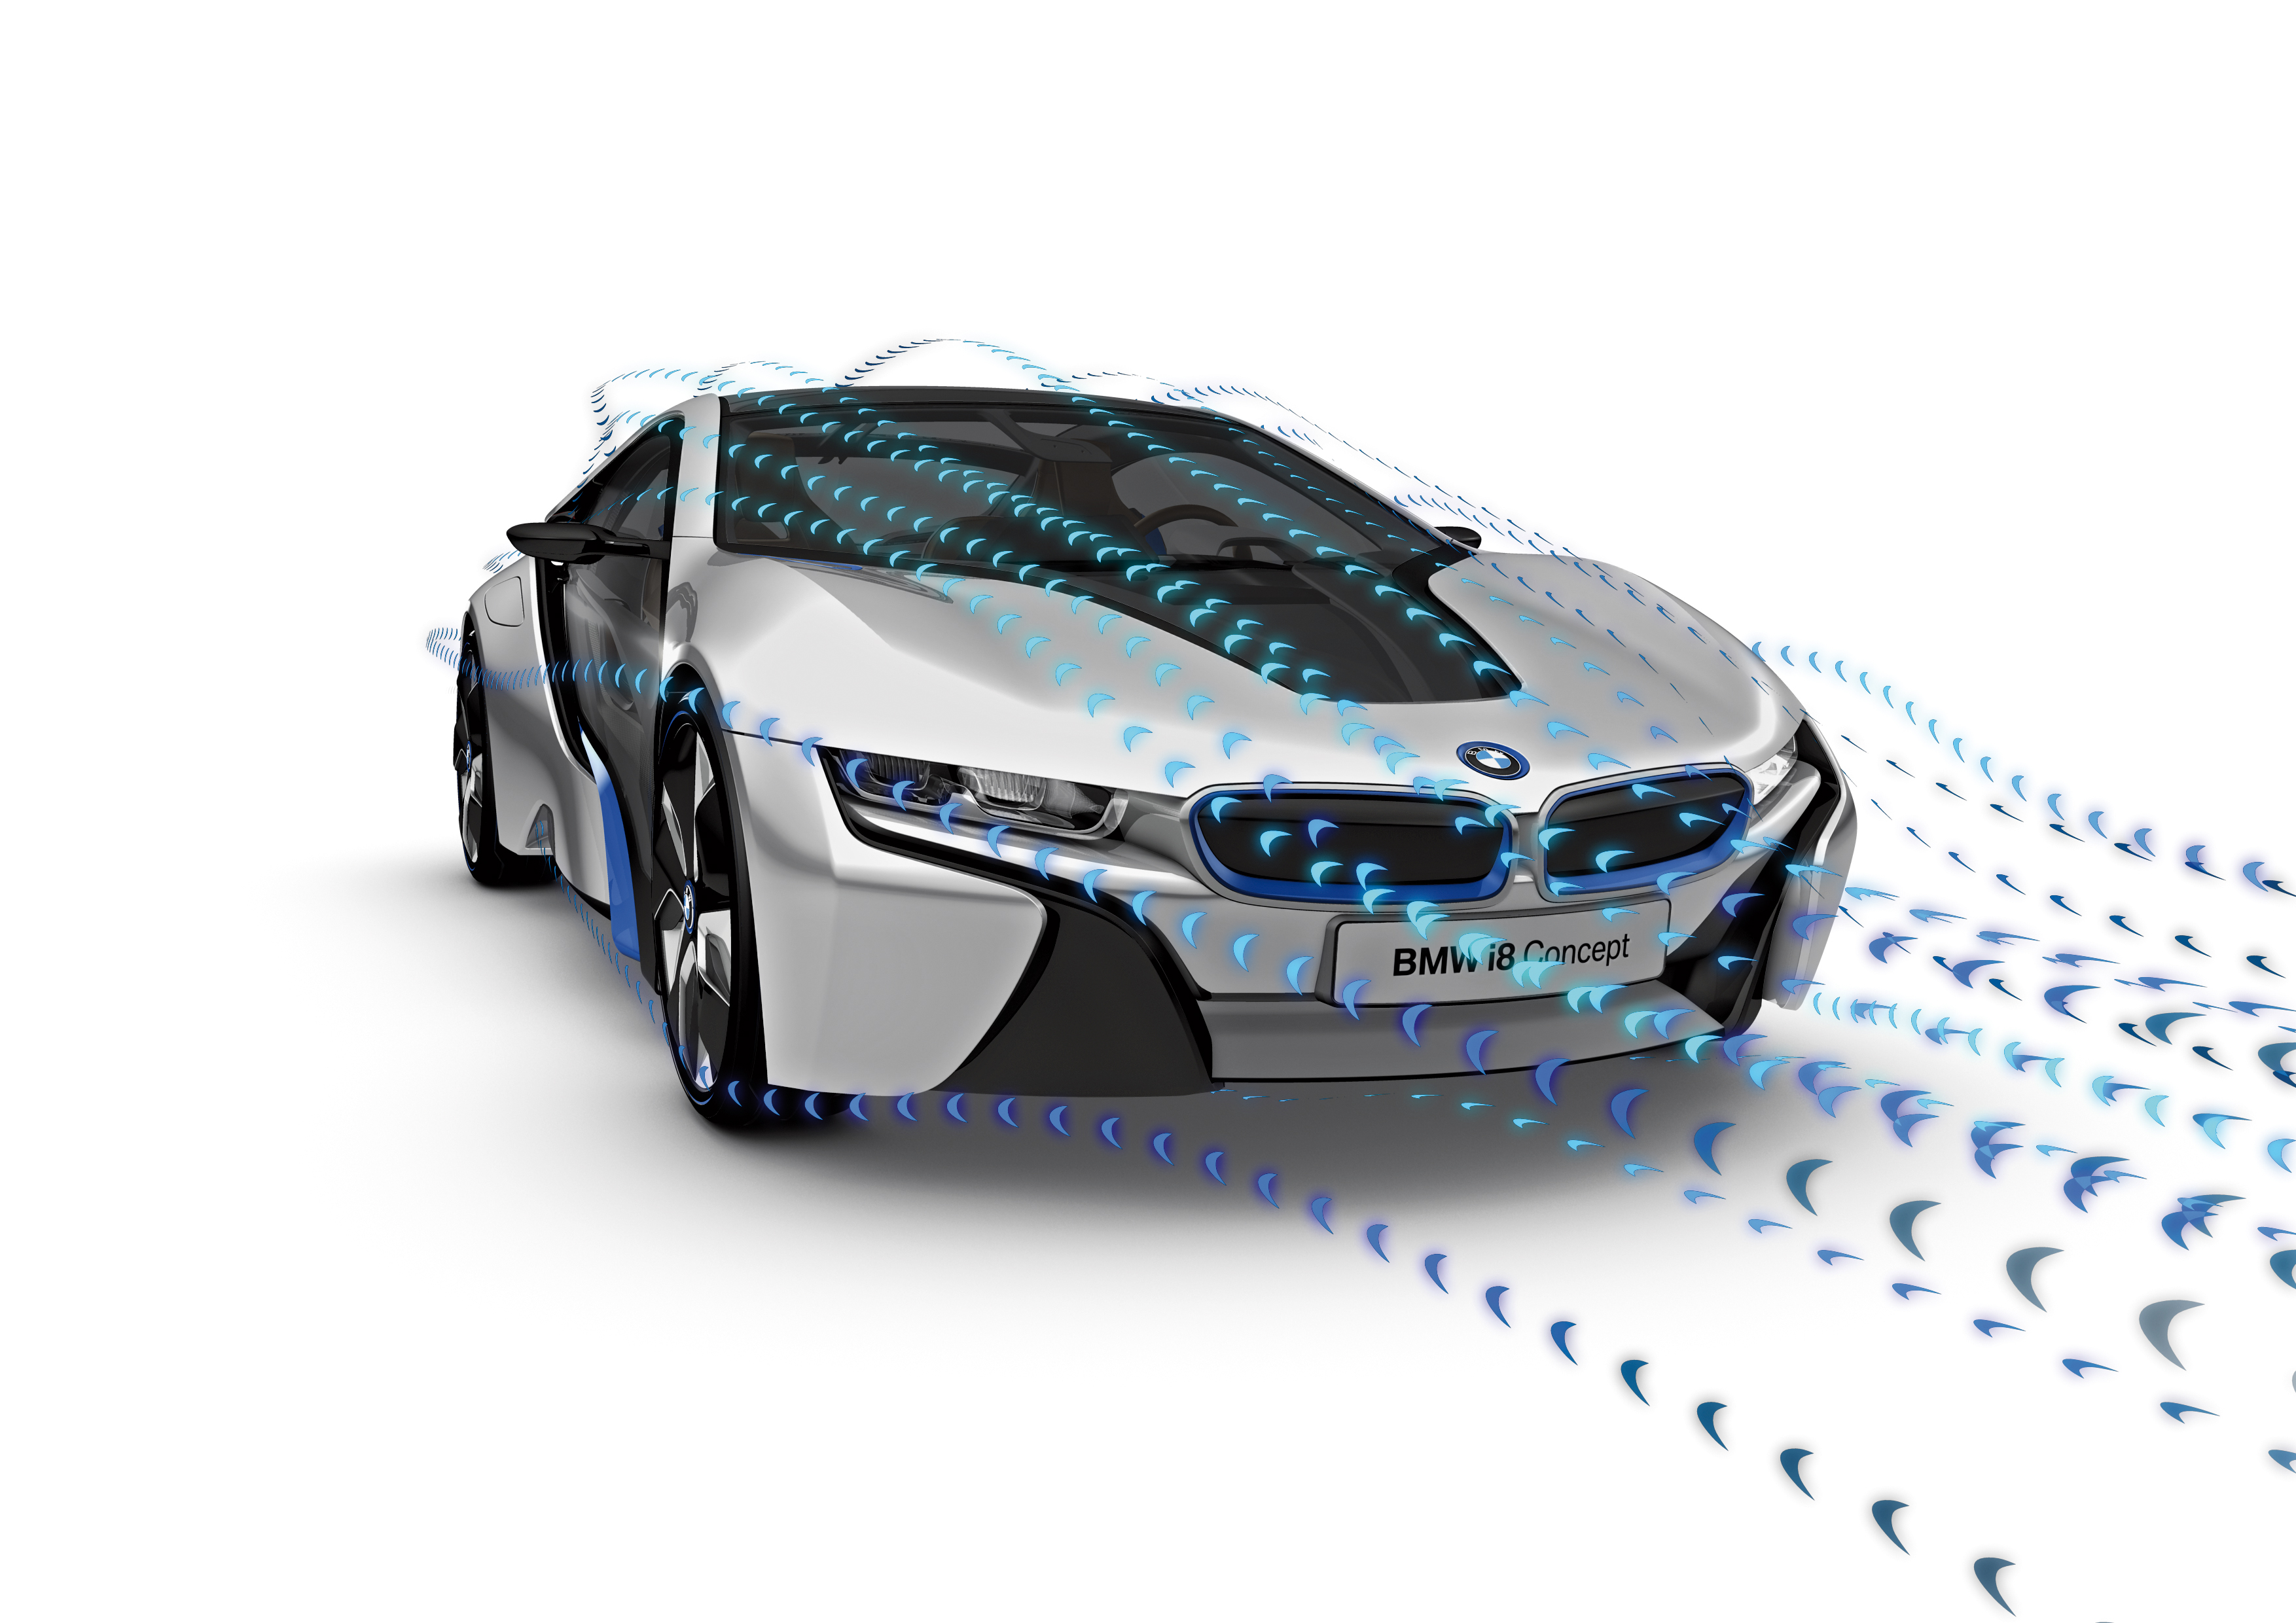 BMW i8 Pictures image converter free download Wallpaper